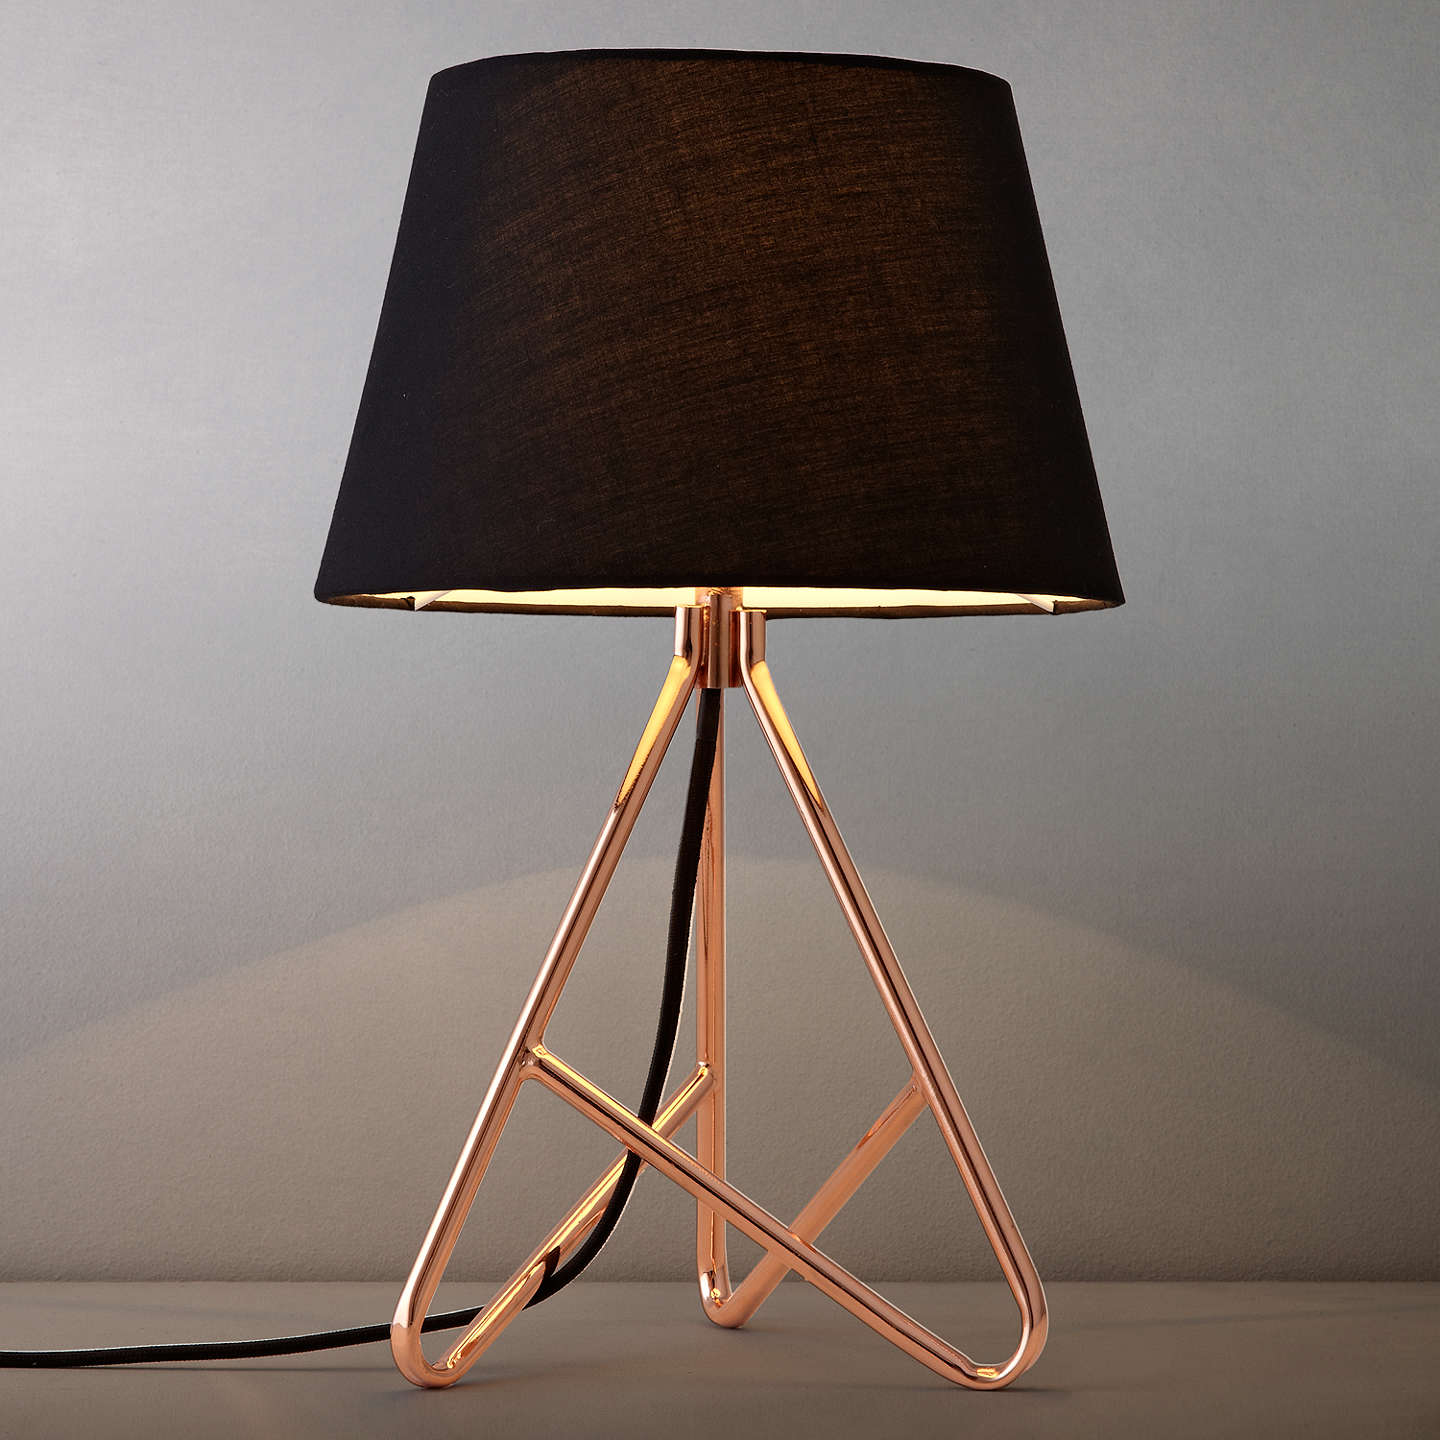 John lewis albus twisted table lamp at john lewis buyjohn lewis albus twisted table lamp blackcopper online at johnlewis aloadofball Image collections